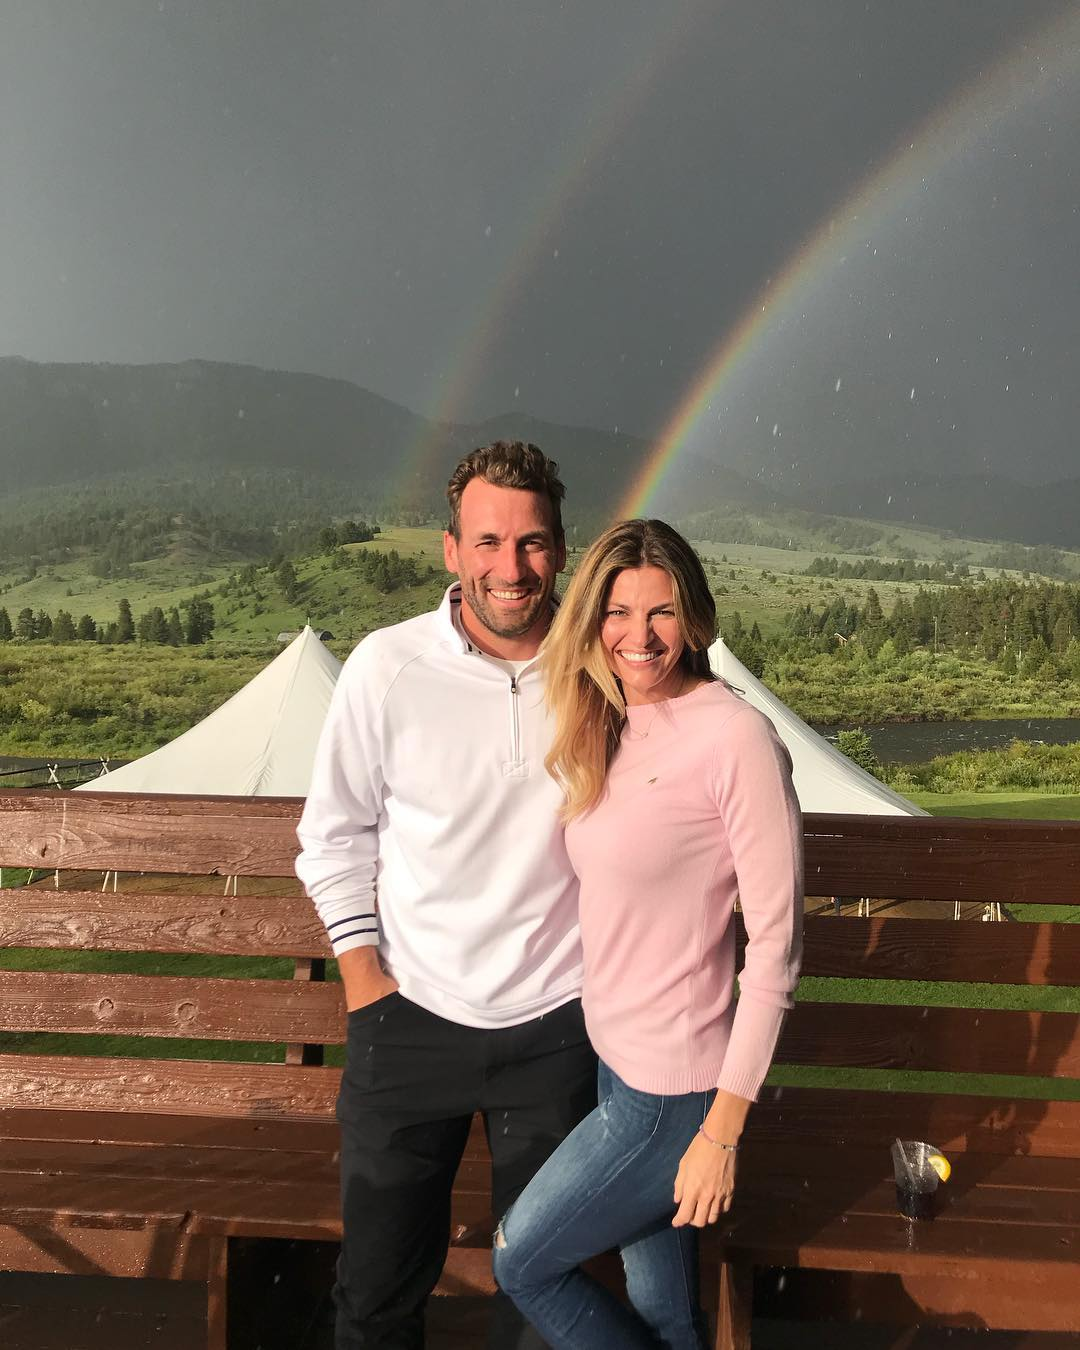 Erin Andrews and Jarret Stoll photographed in front of beautiful rainbow